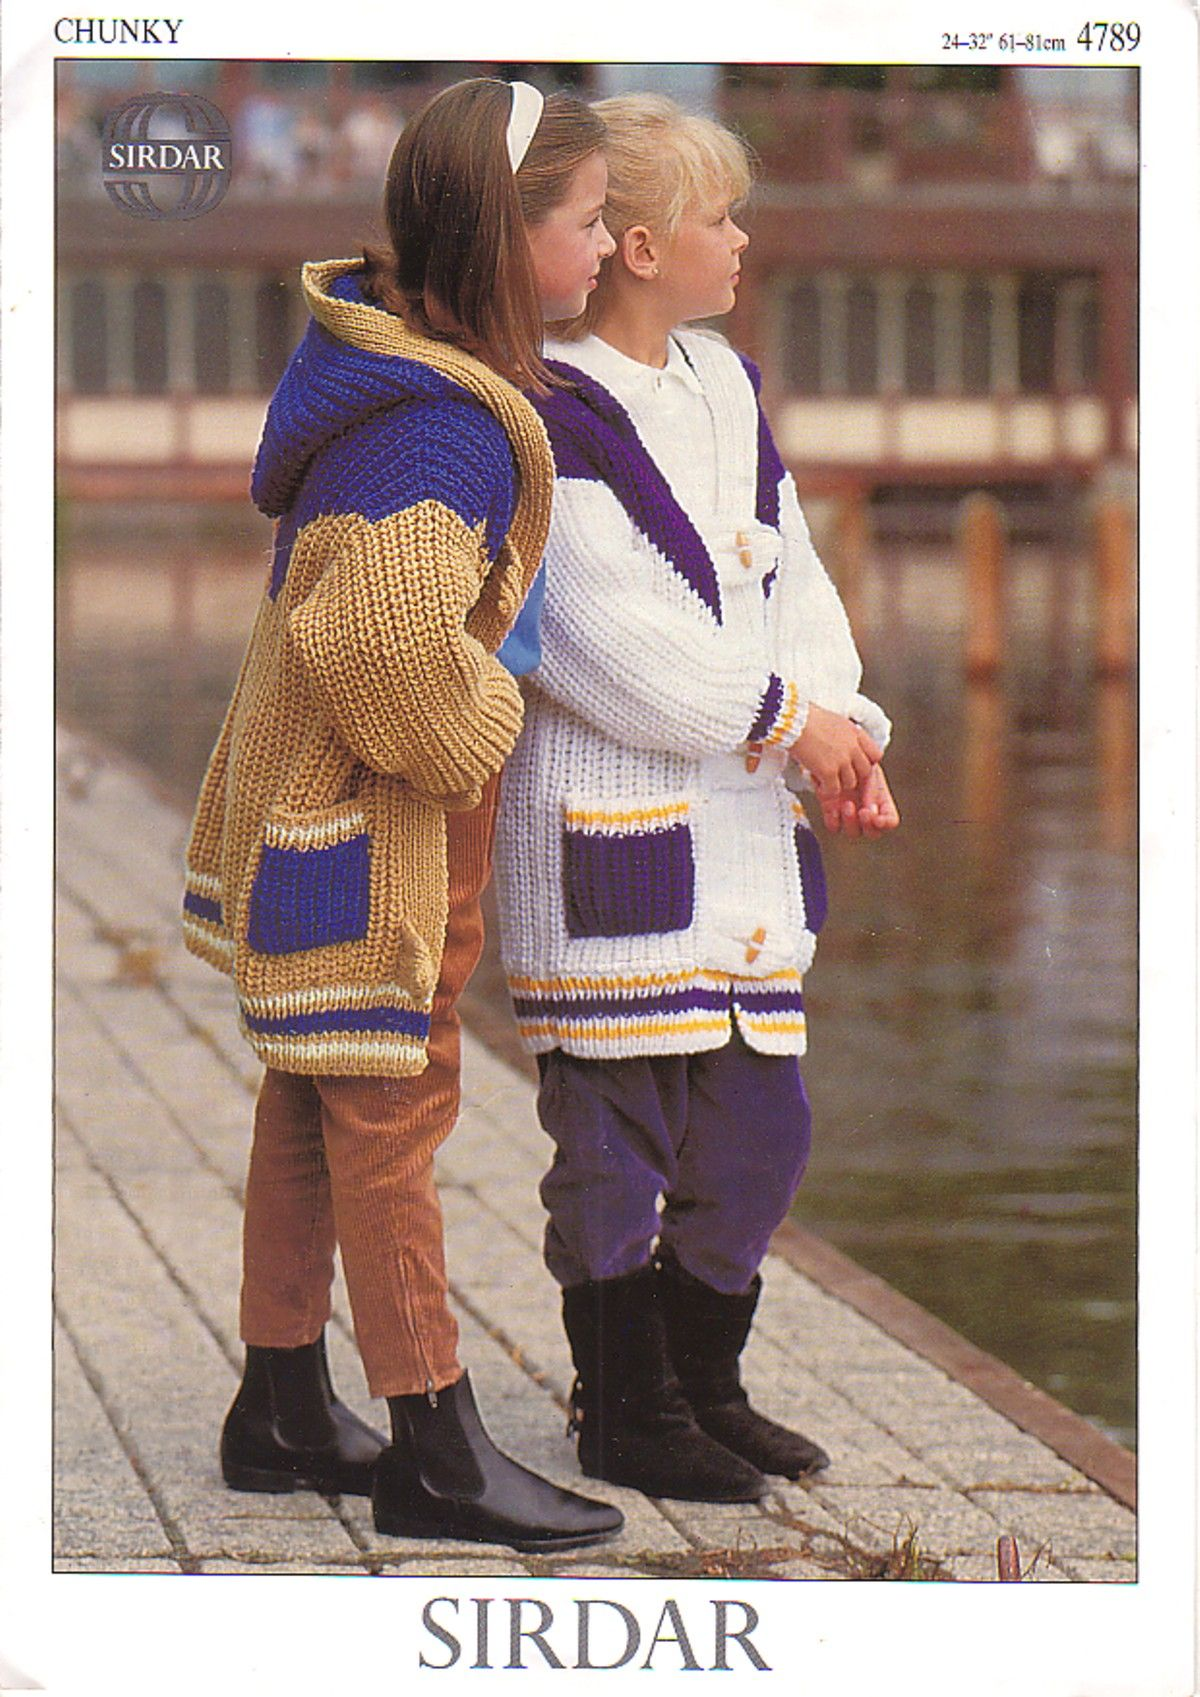 Sirdar knitting patterns 4789 chunky childrens jacket knitting sirdar knitting patterns 4789 chunky childrens jacket knitting sewing crochet for children babies pinterest knitting patterns sirdar knitting bankloansurffo Image collections